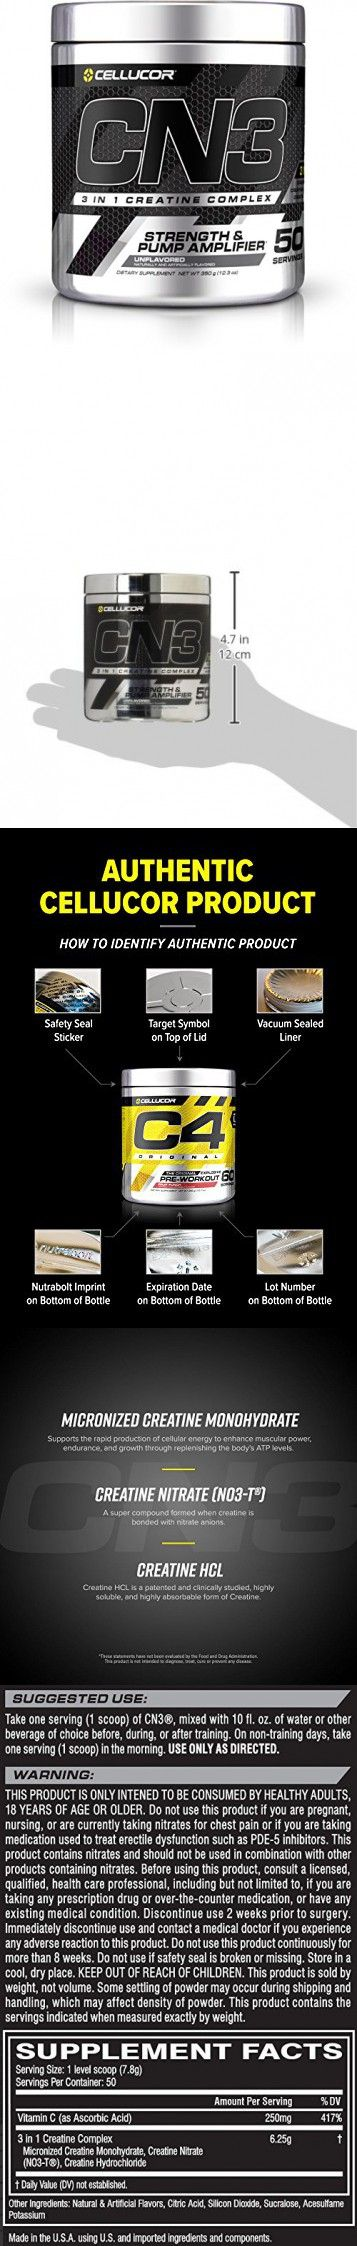 Cellucor, CN3, Creatine Nitrate Strength and Pump Amplifier, Unflavored, 50 Servings